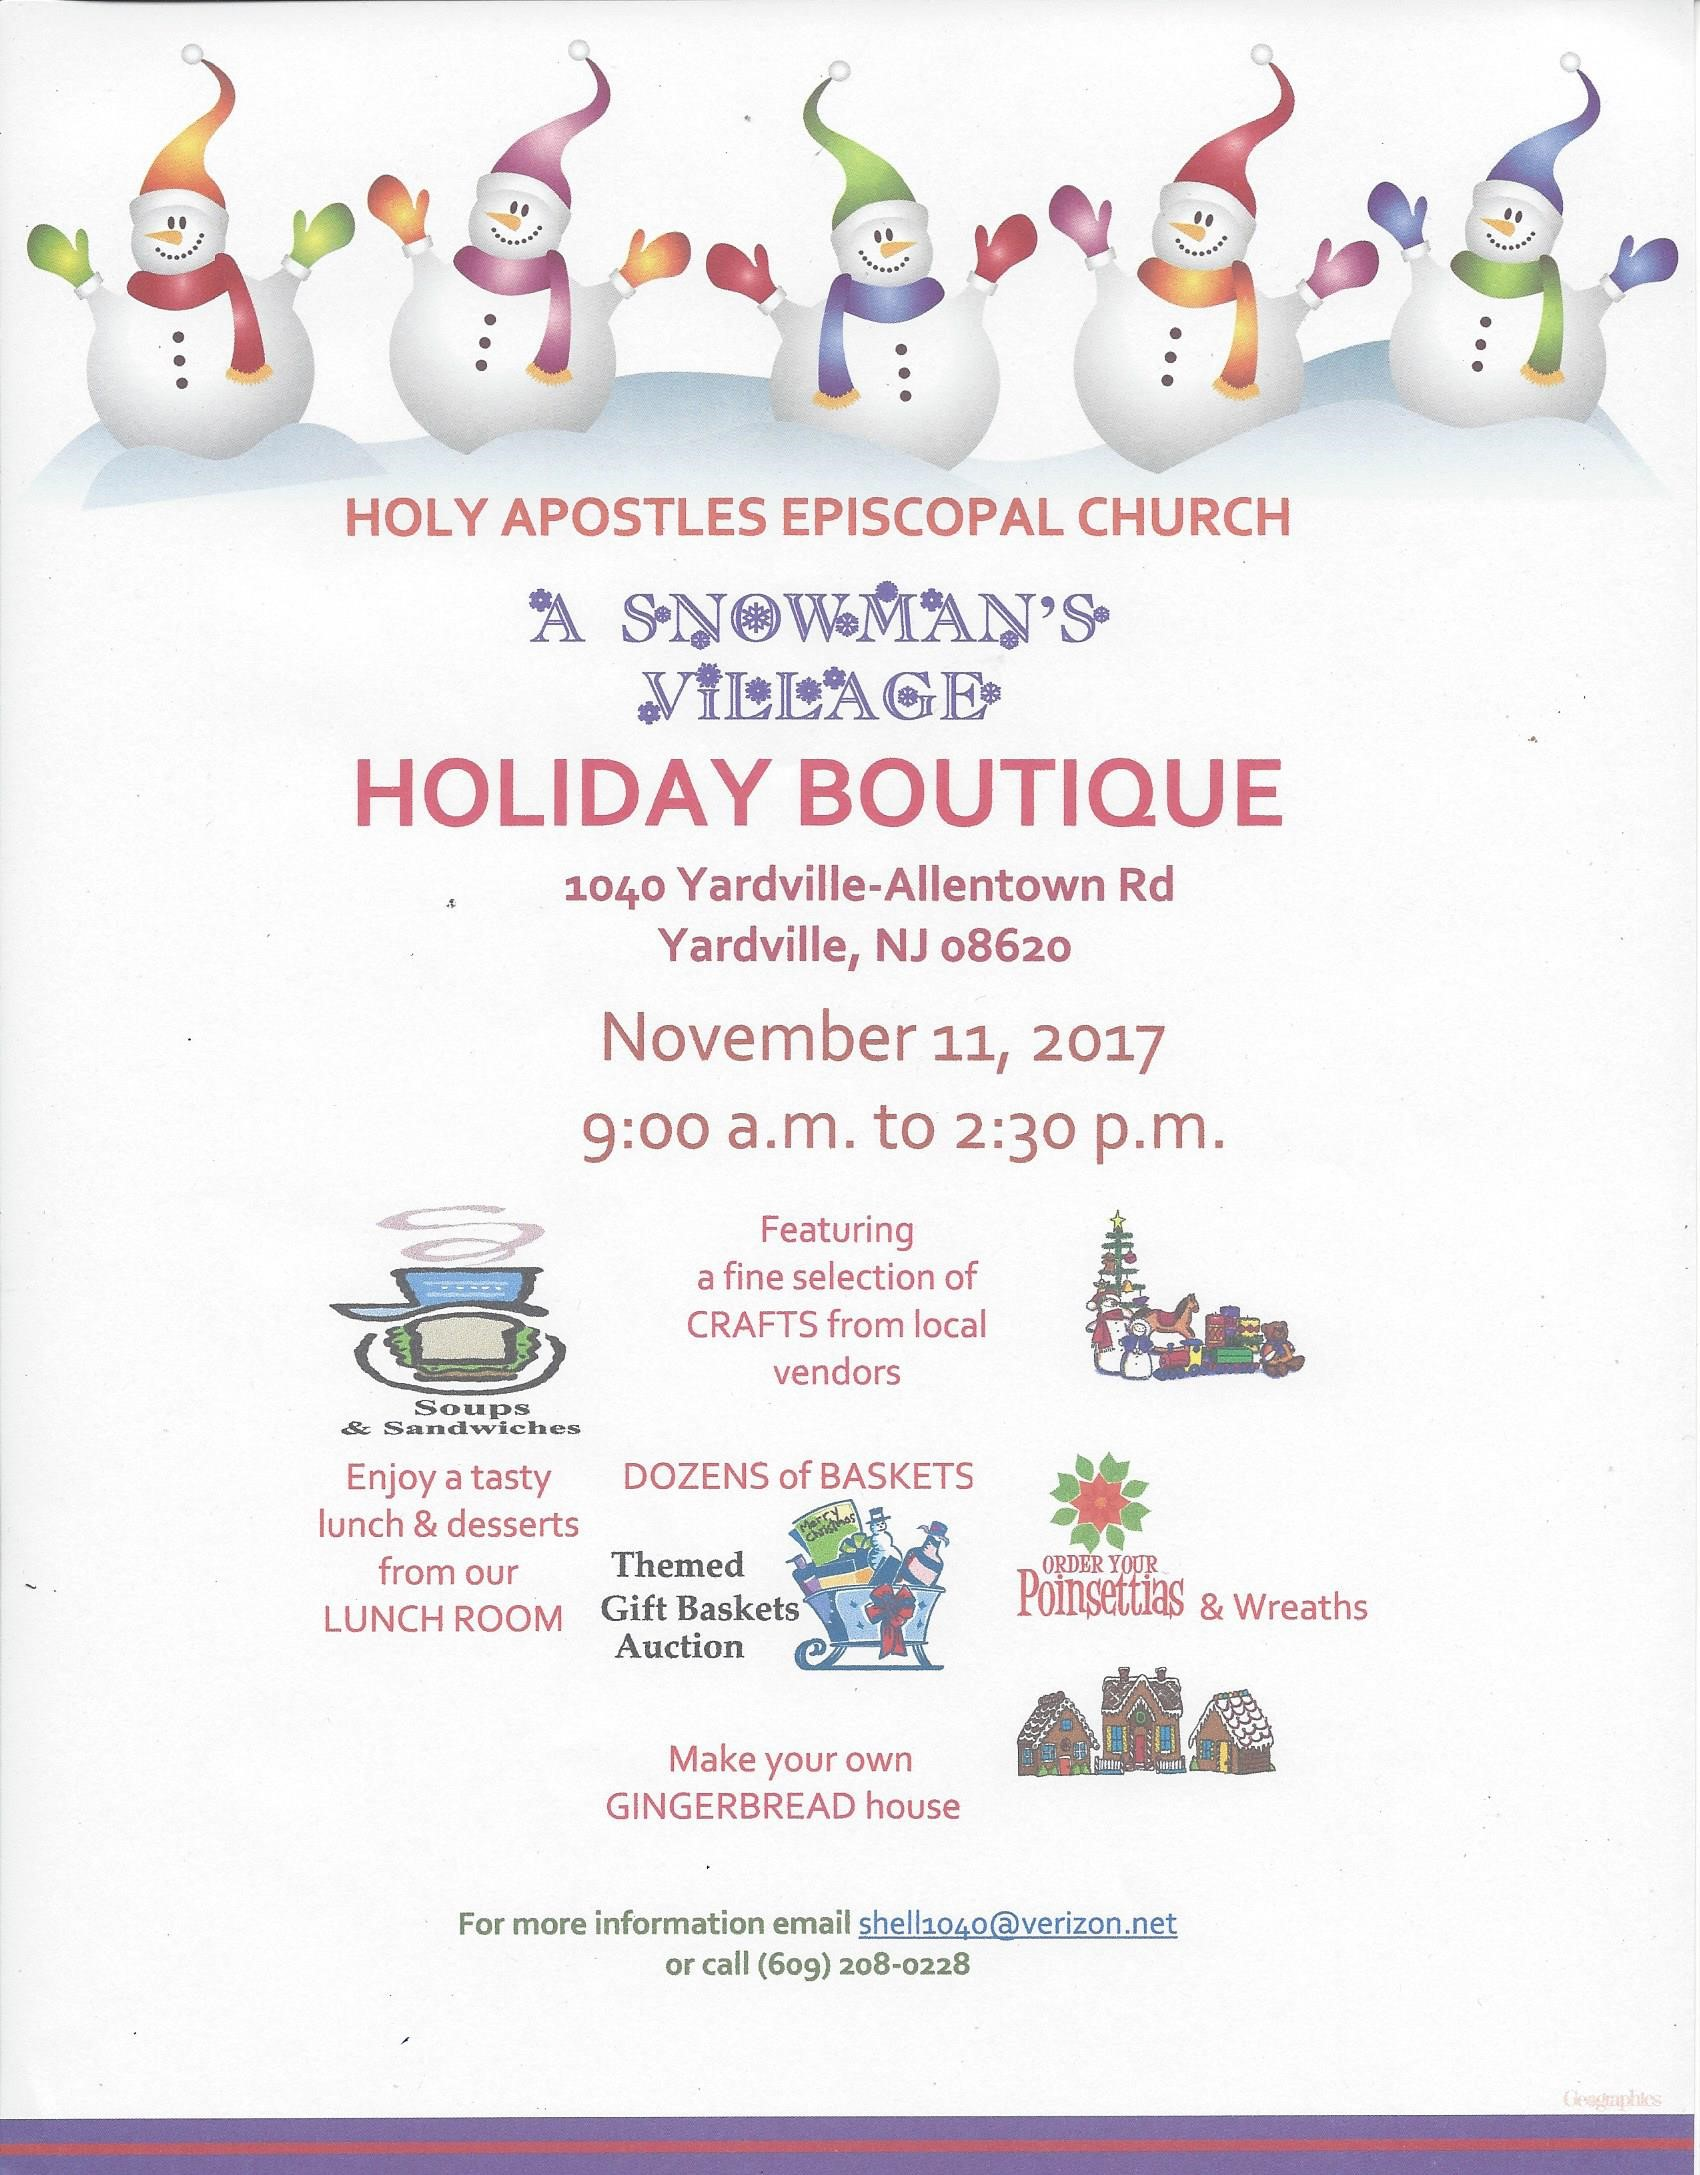 Holiday Boutique - November 11, 2017